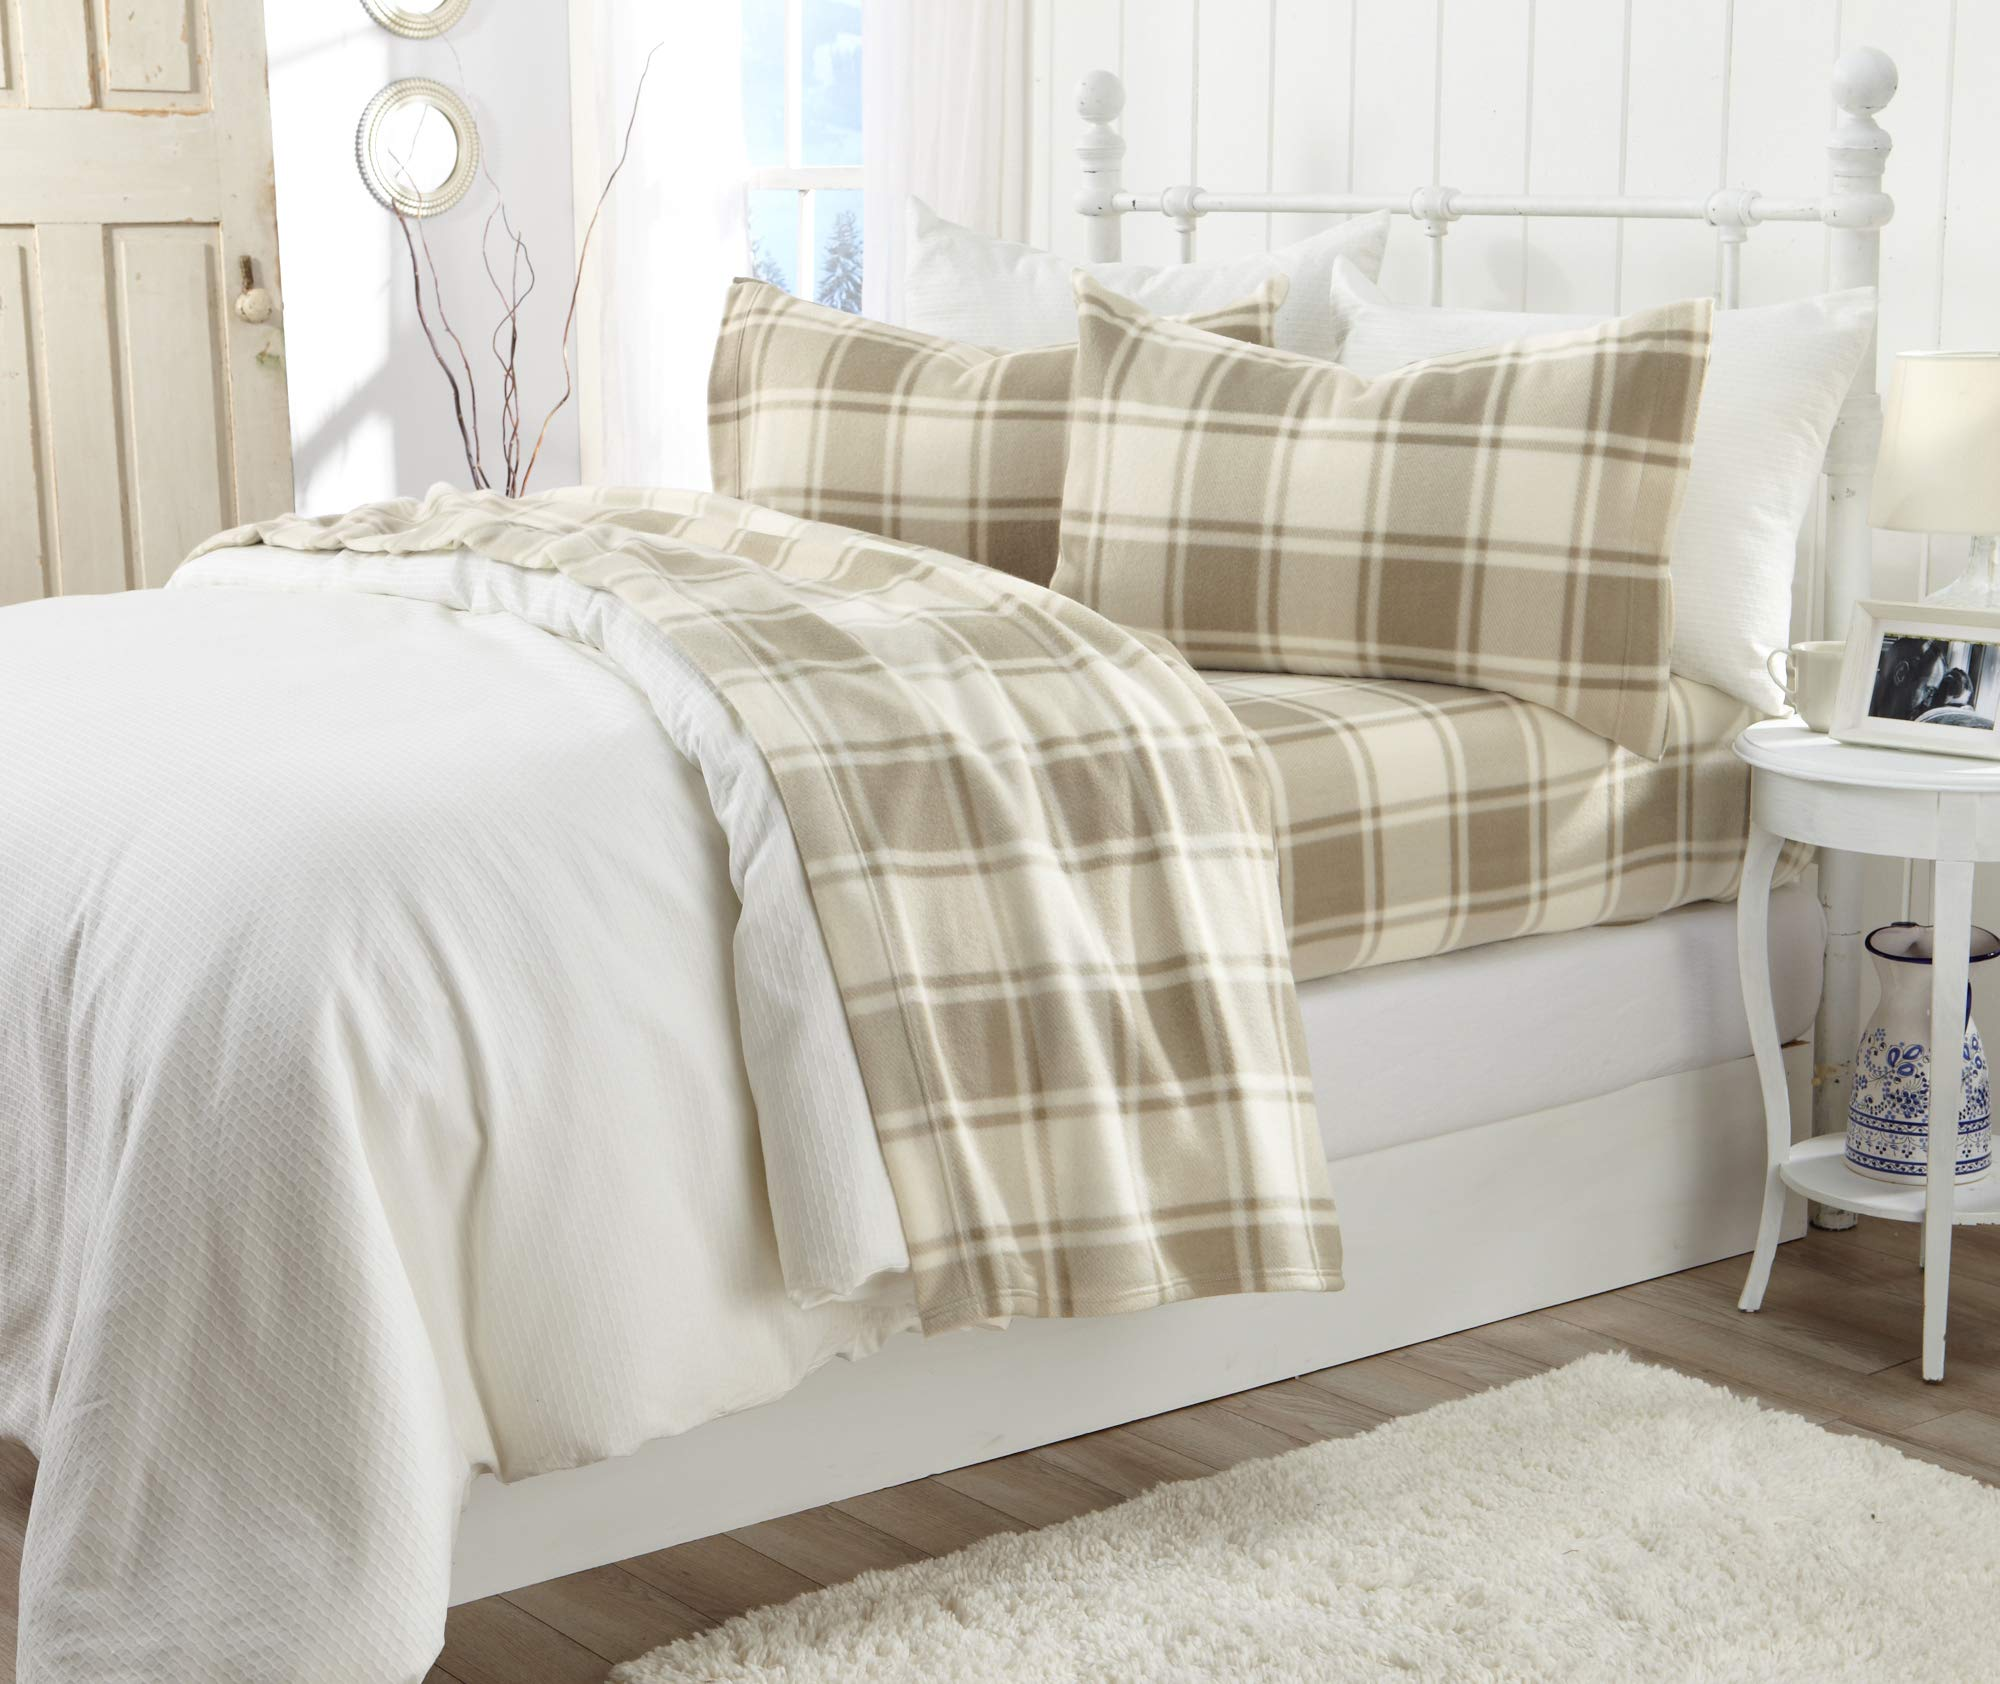 Great Bay Home Super Soft Extra Plush Plaid Polar Fleece Sheet Set. Cozy, Warm, Durable, Smooth, Breathable Winter Sheets with Plaid Pattern. Dara Collection Brand. (Full, Taupe) by Great Bay Home (Image #4)